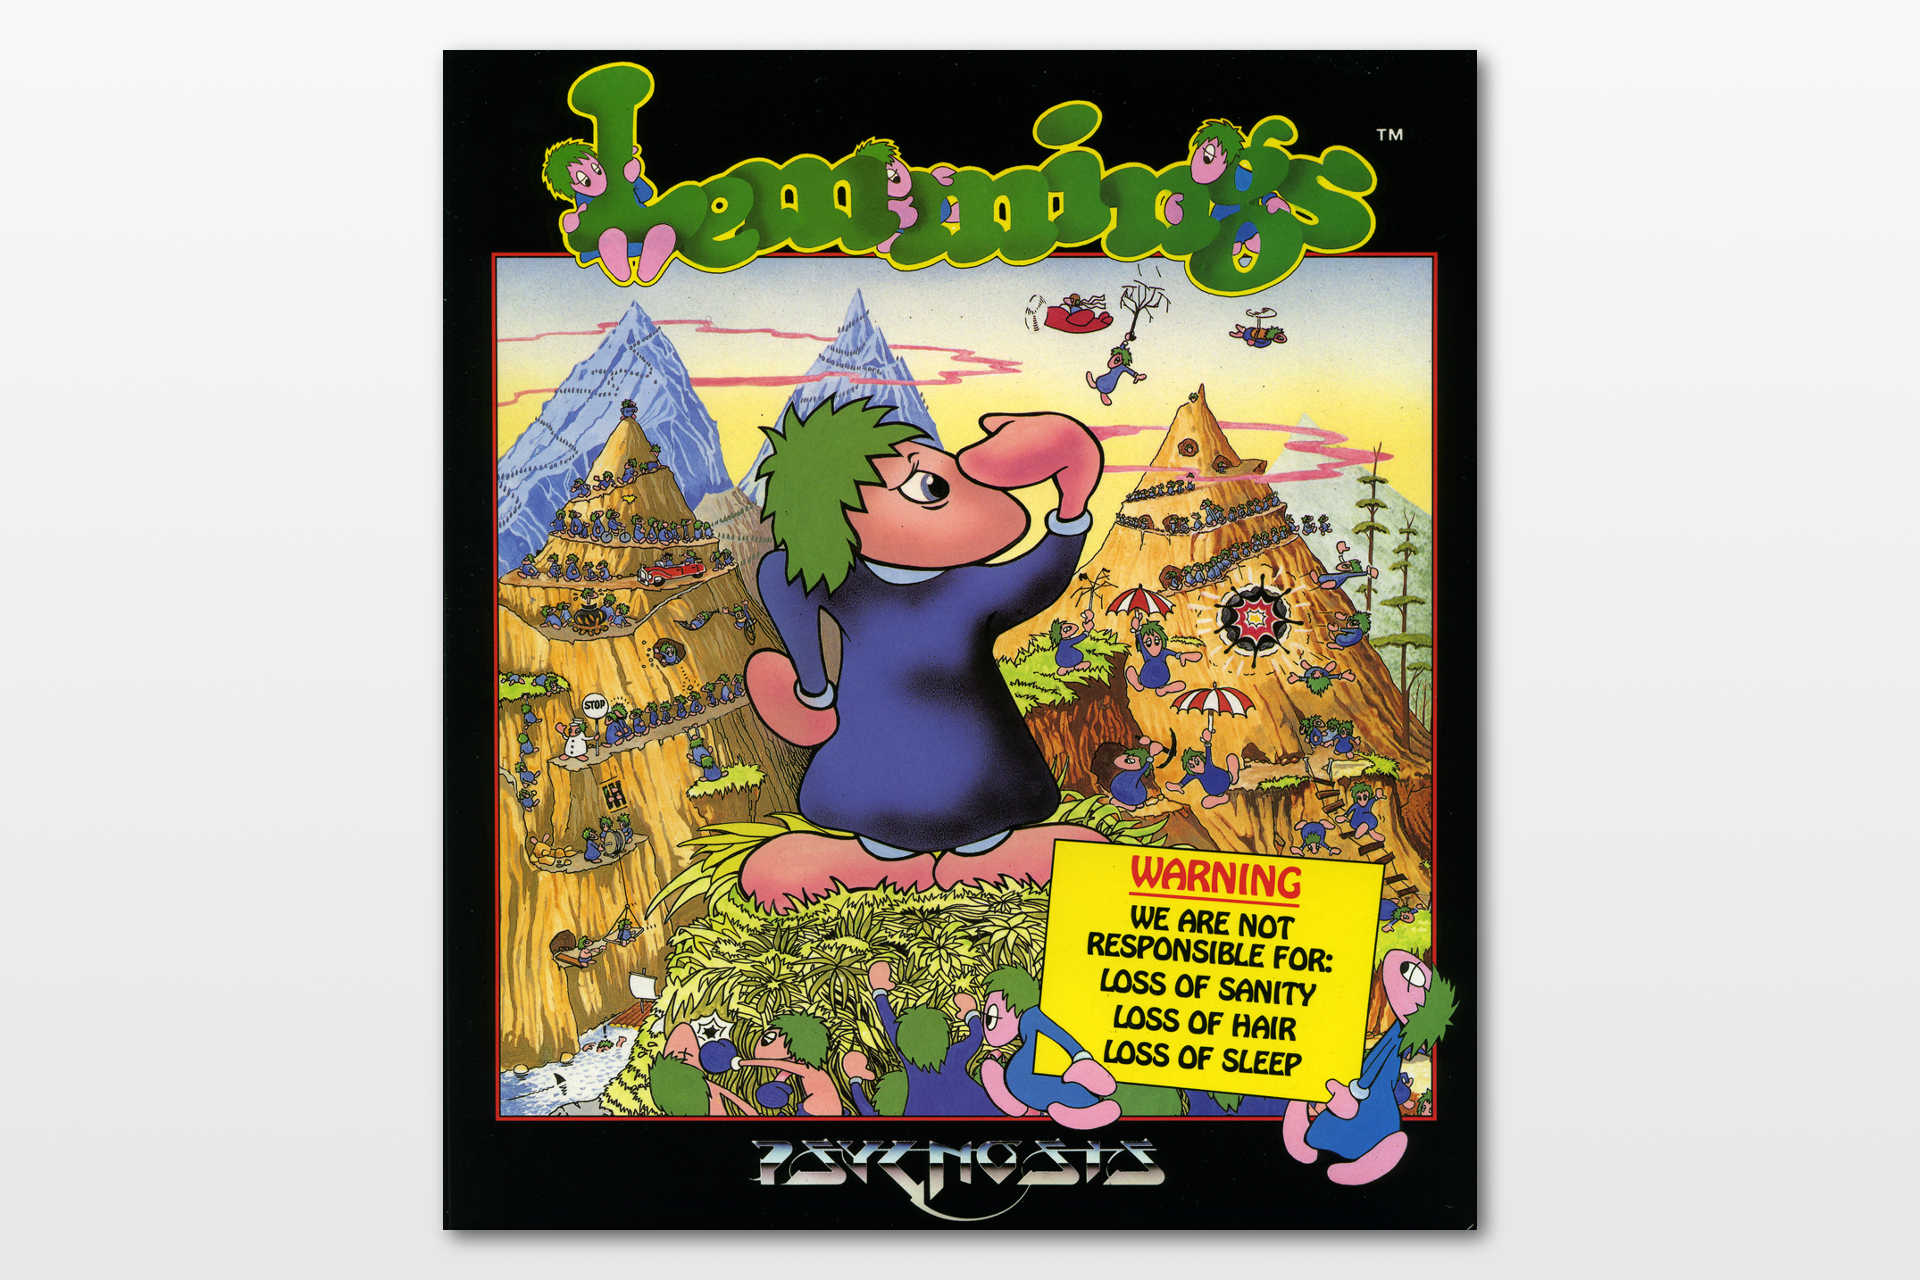 Retro gaming: Lemmings